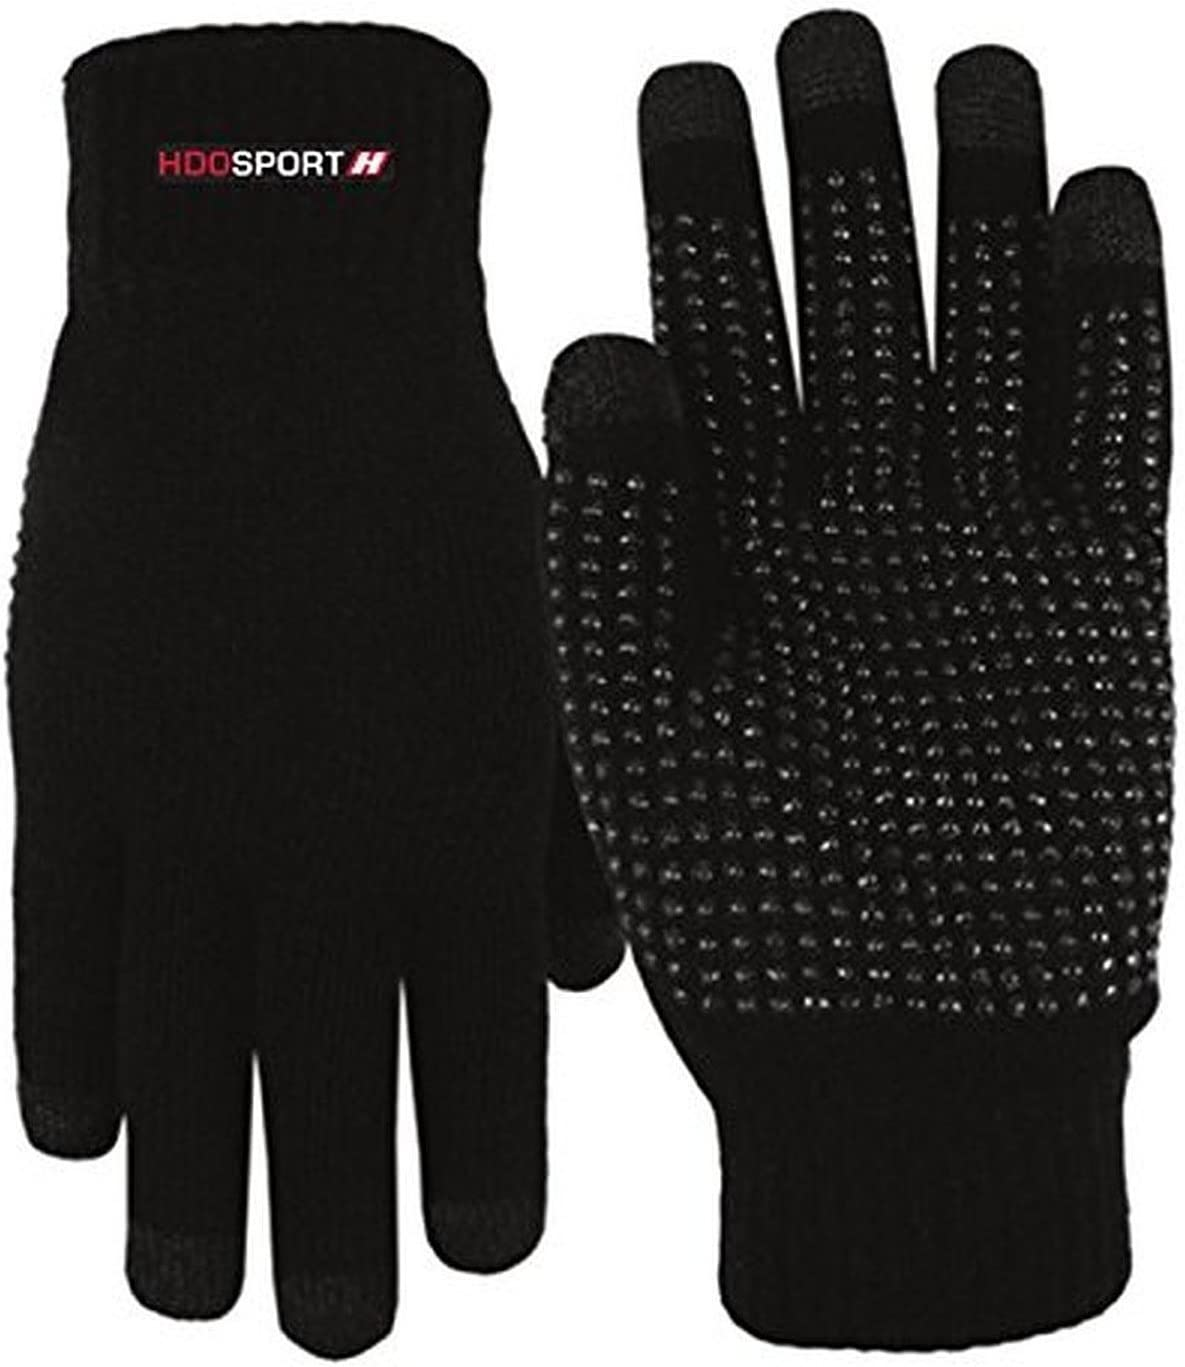 Black Diamond Crampon Bag and HDO Lite E-tip Gloves with Grippers